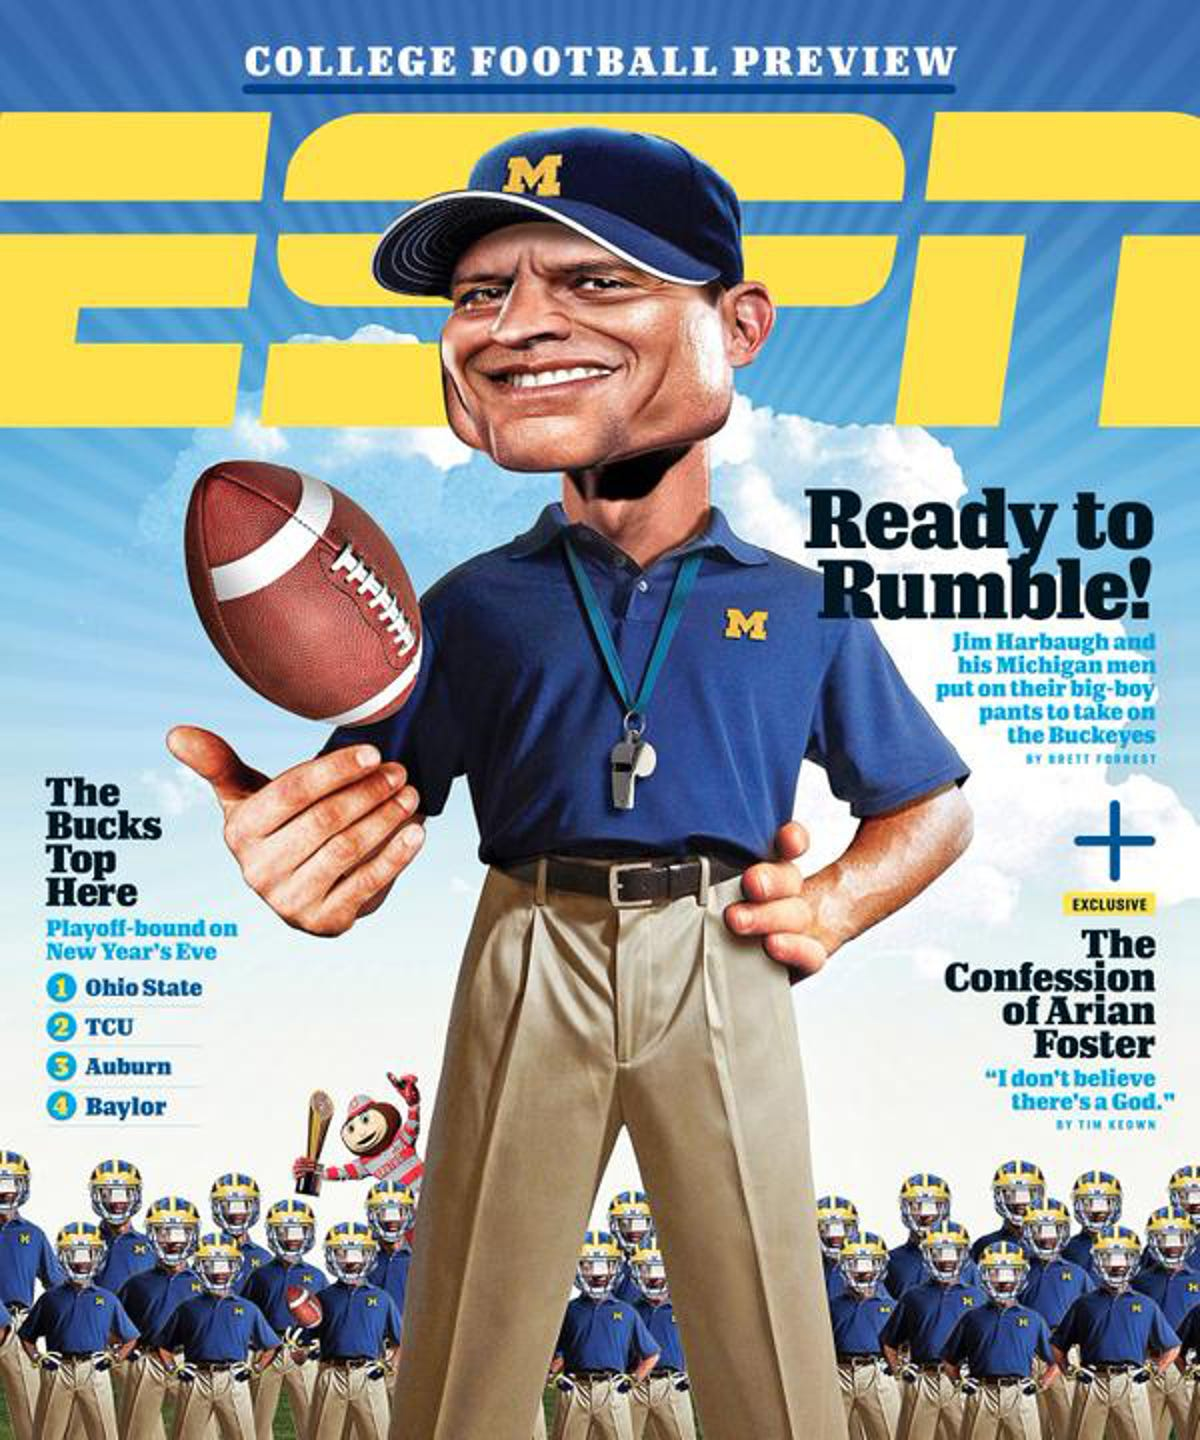 Surprise! Harbaugh on cover of ESPN preview magazine